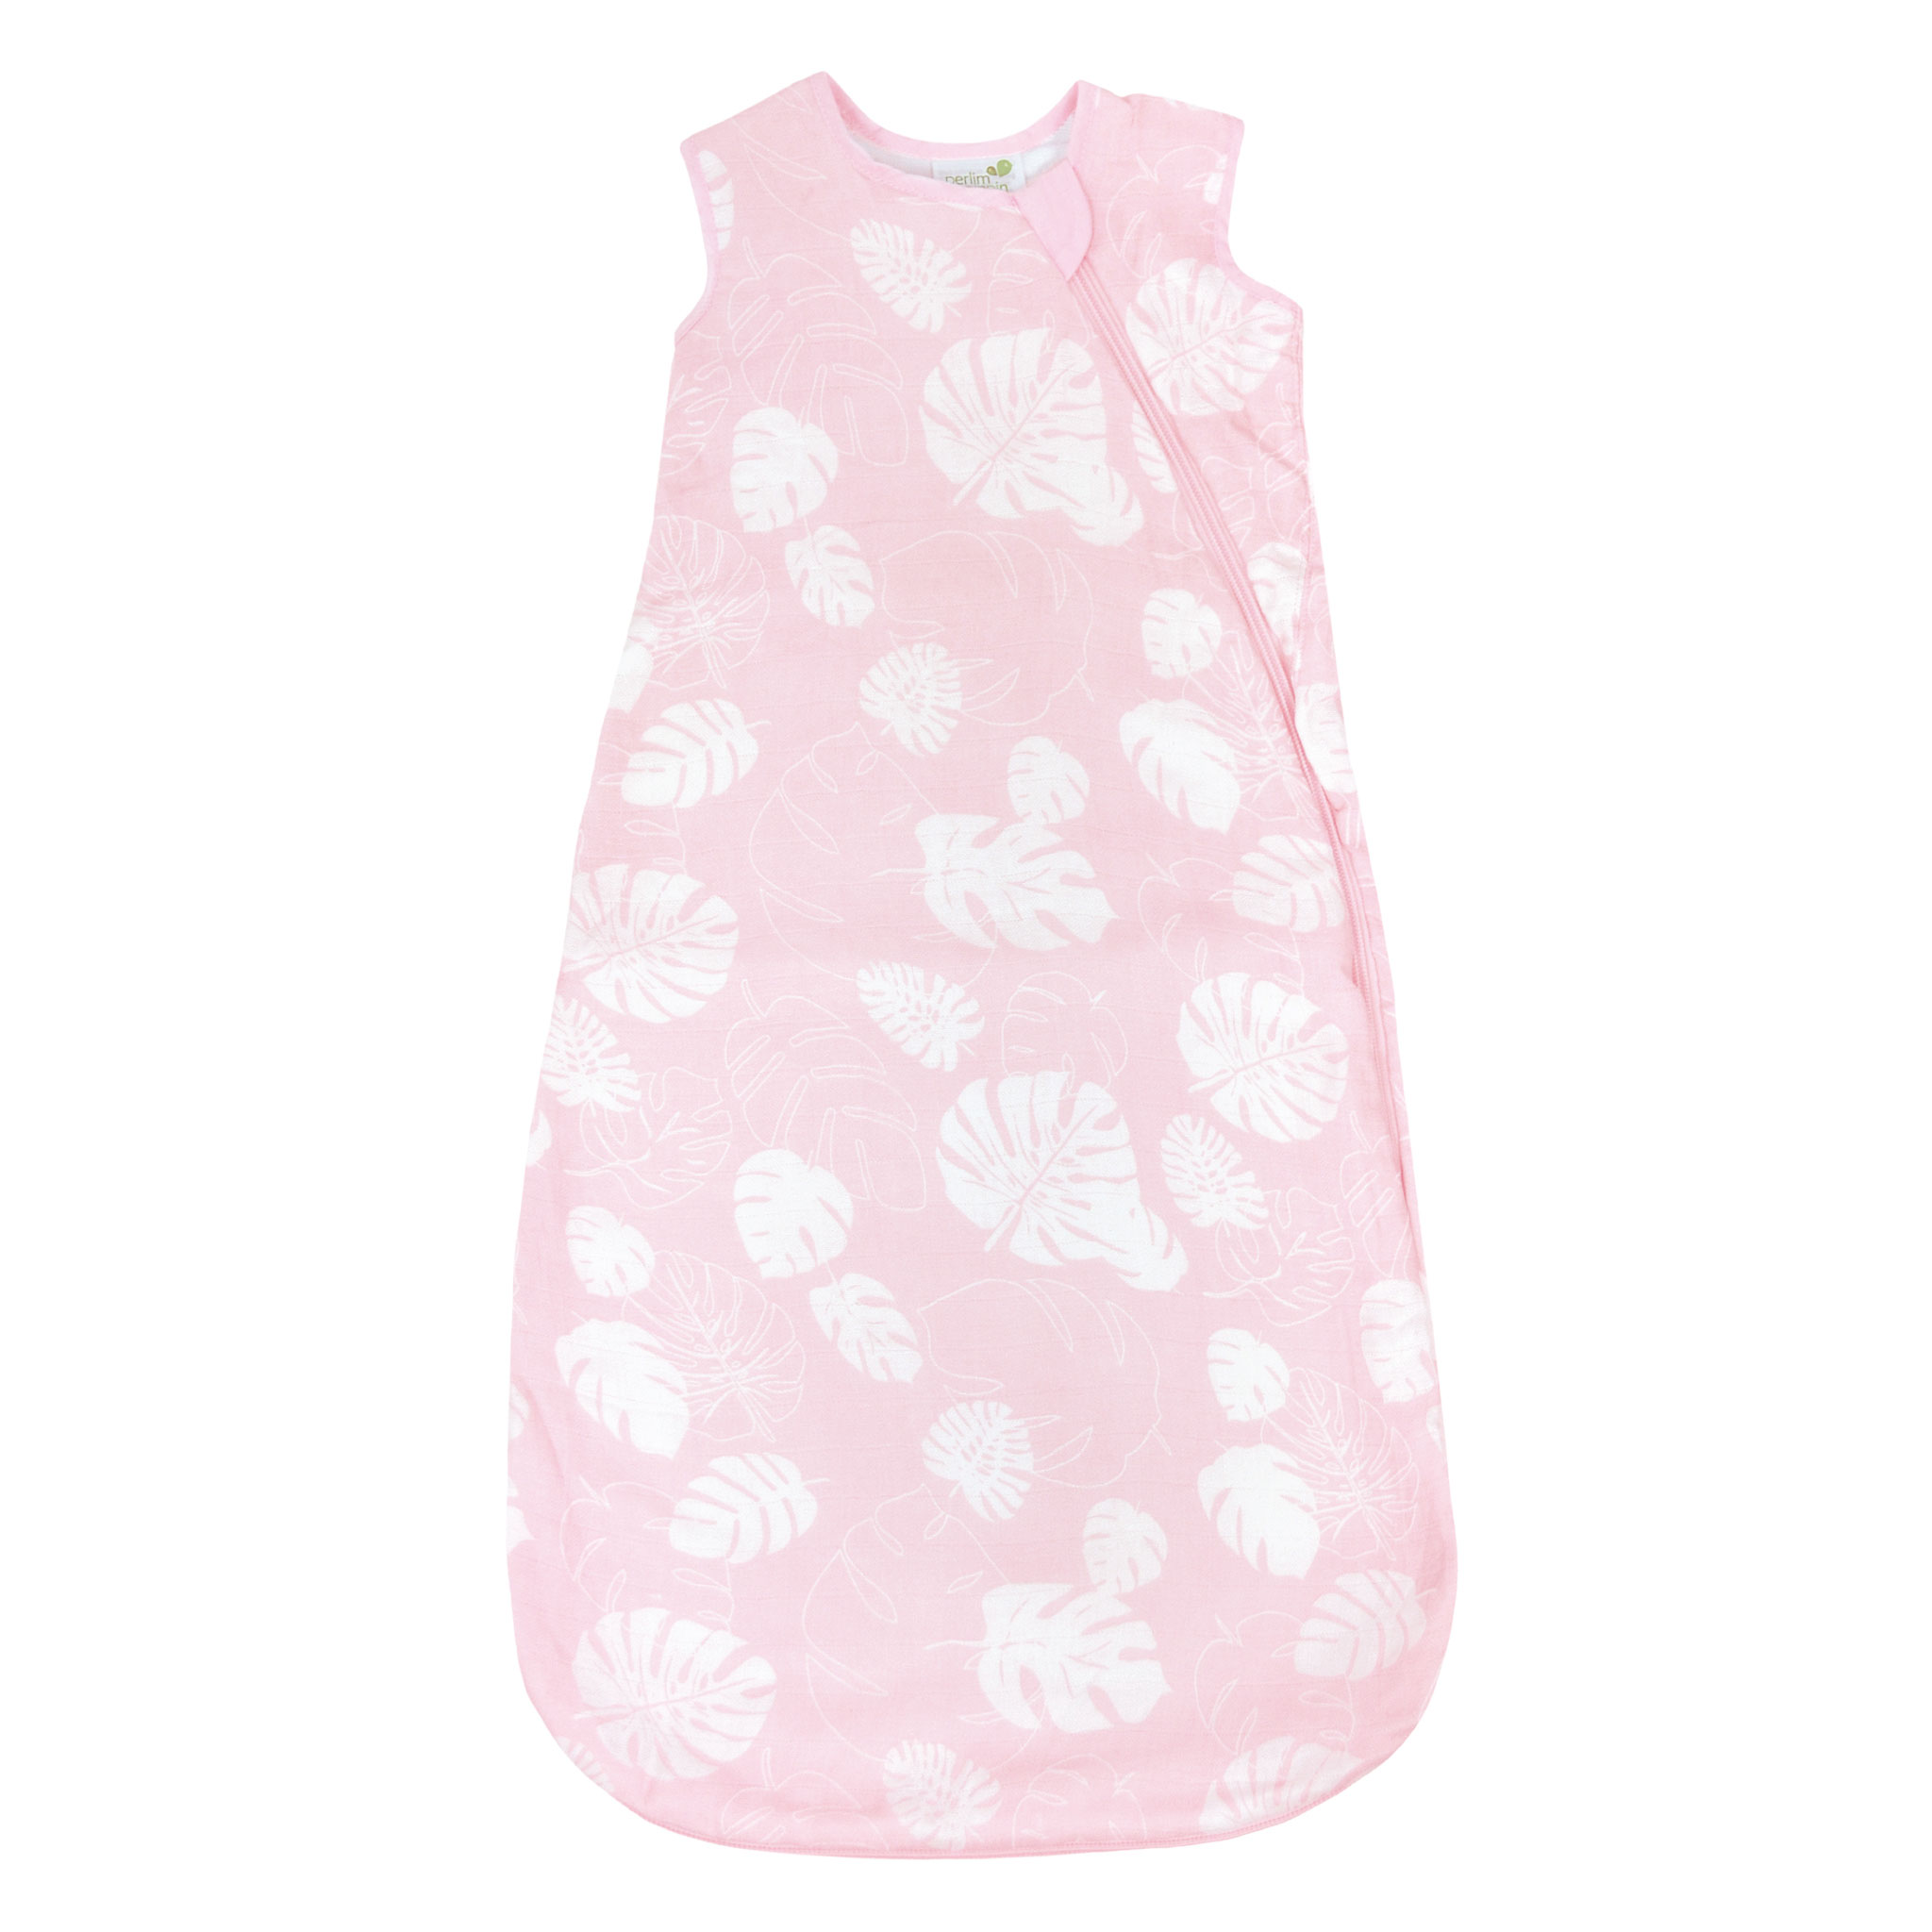 NEW Spring 2021 Release 0.7 TOG Perlimpinpin Muslin Sleep Sack Canada/'s #1 Baby Bag 18-36 Months